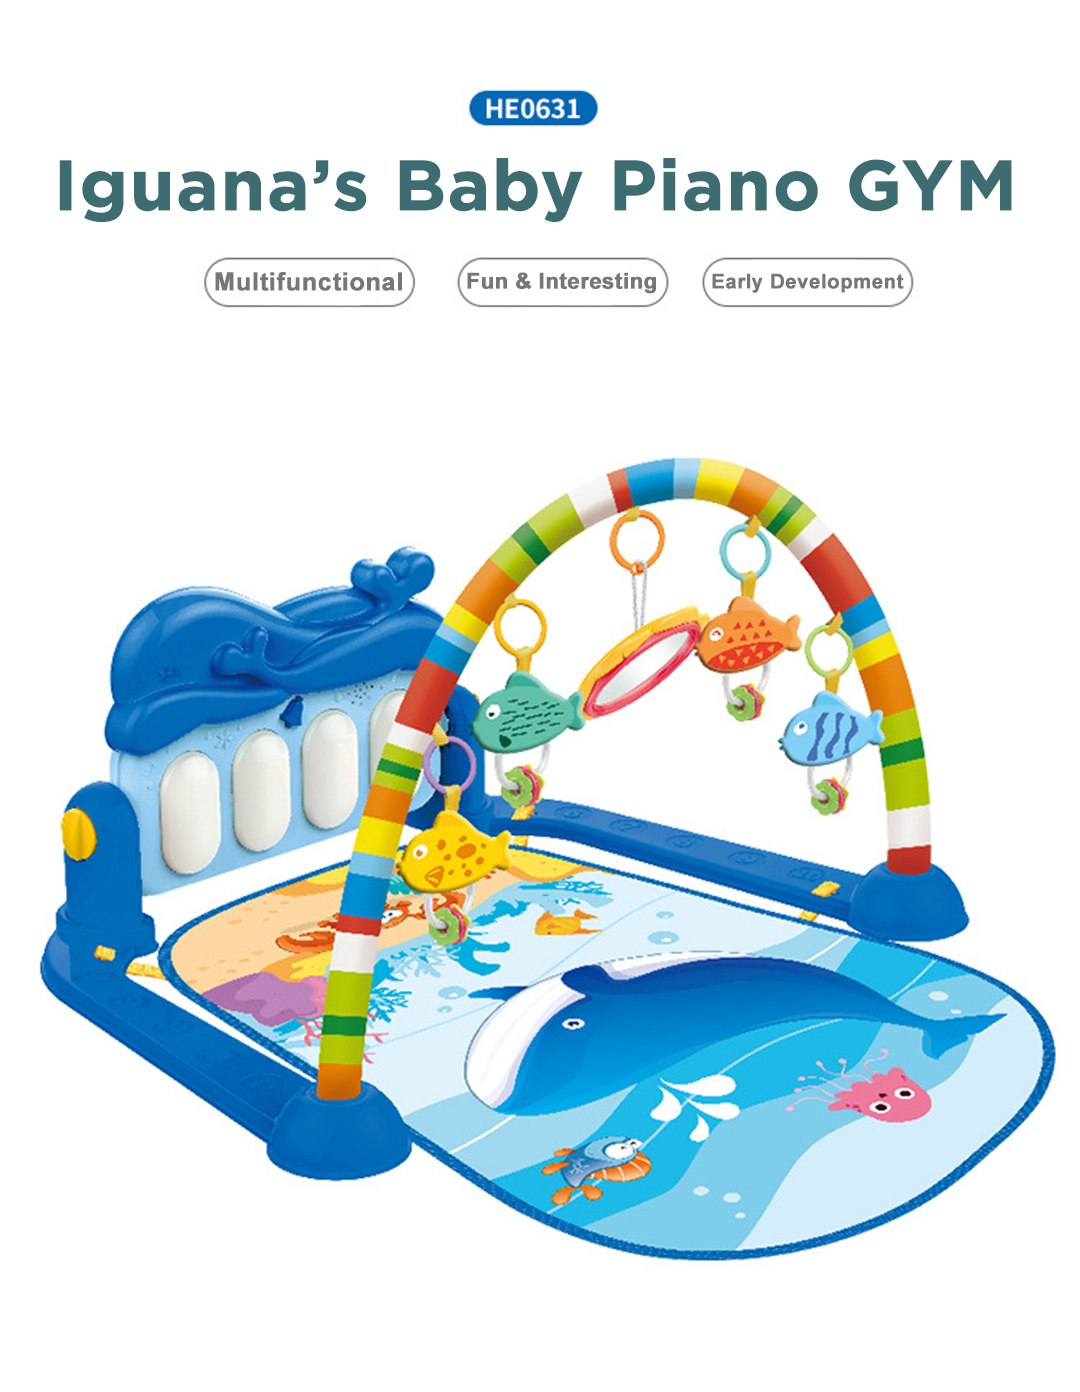 Iguana Online Musical Environmentally Friendly ABS Baby Piano Gym Mat with Lights BGM631 Green